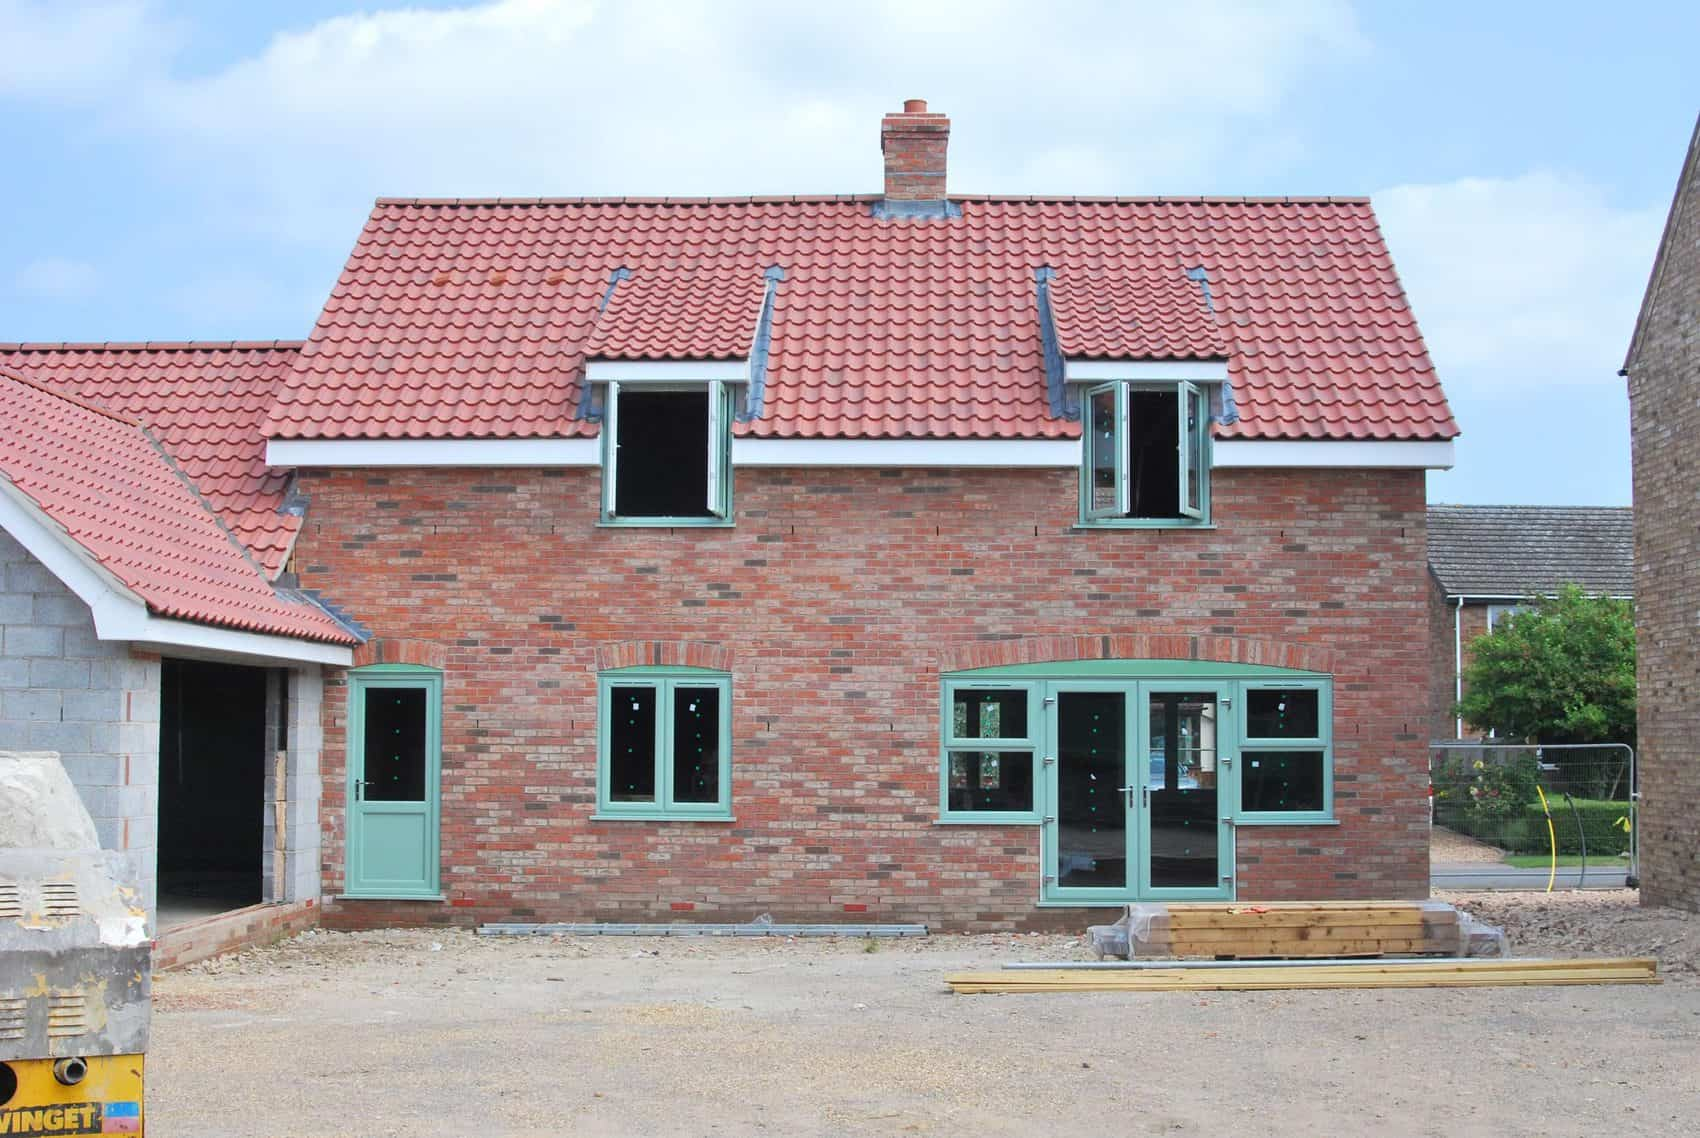 upward-barn conversions-traditional build-plot5-14